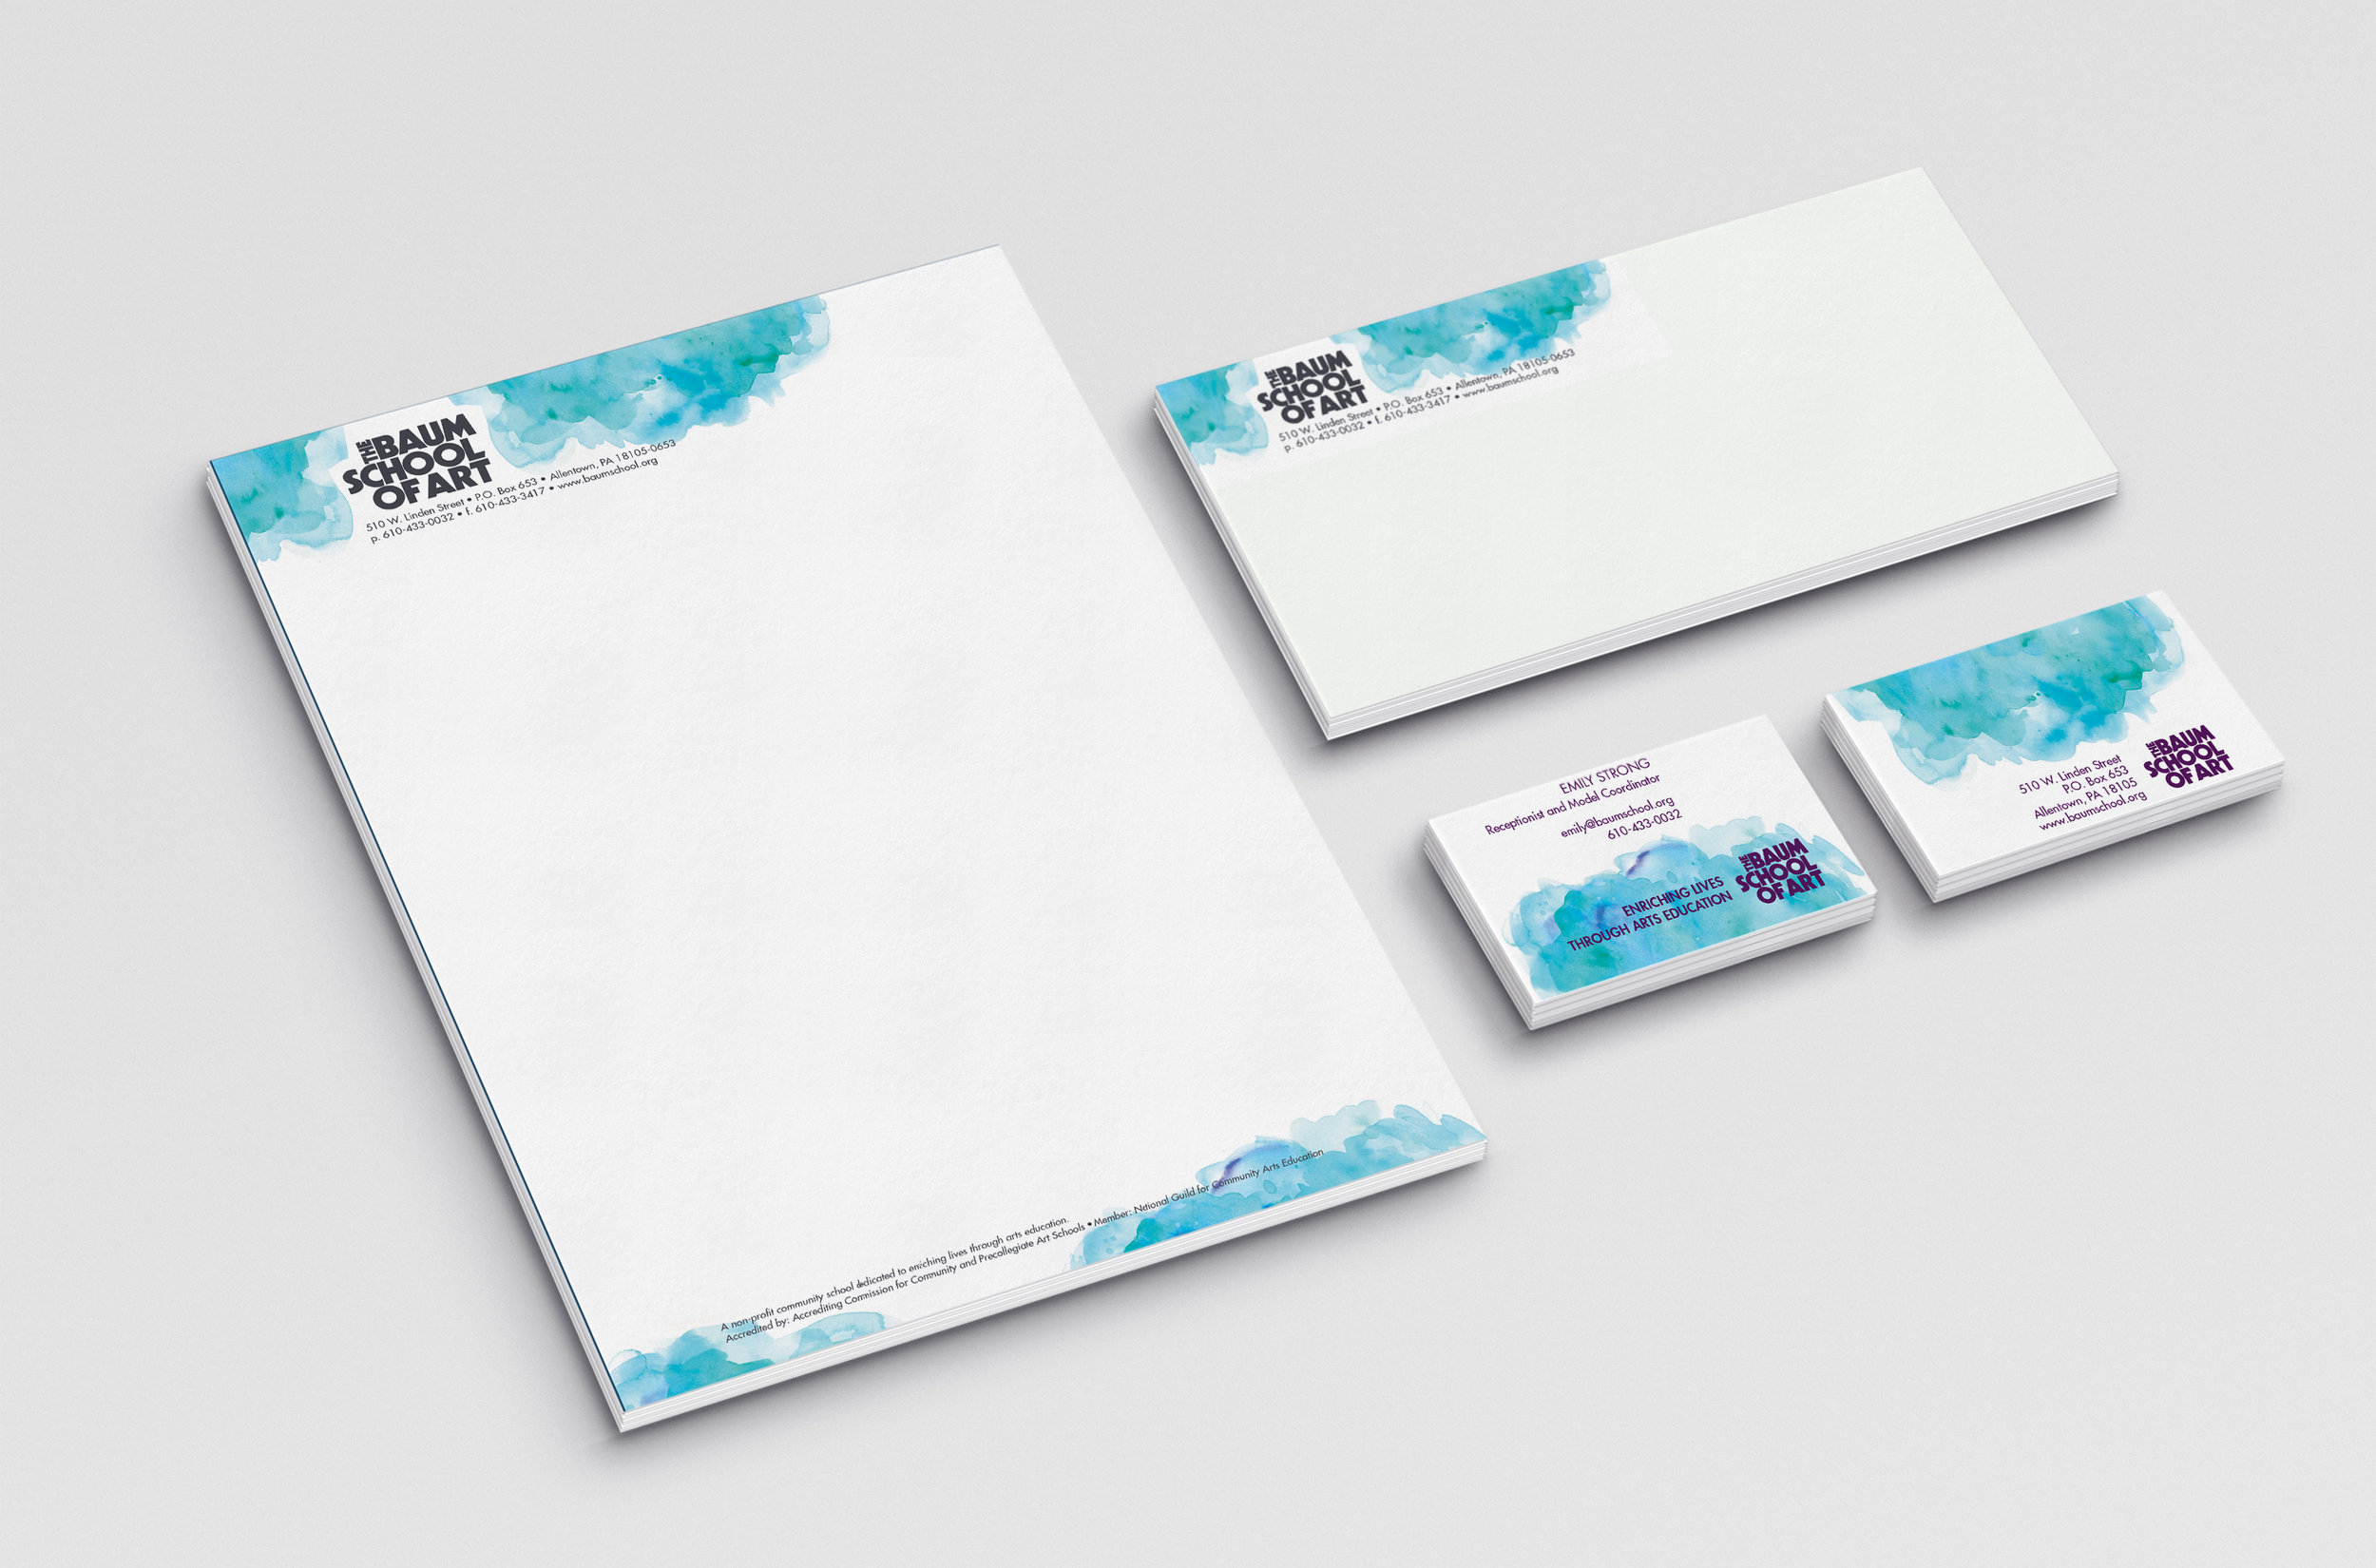 Baum School of Art – Allentown, PA Non-profit Community Art School  Baum School of Art Stationery consisting of letterhead, envelope, and double-sided business cards.